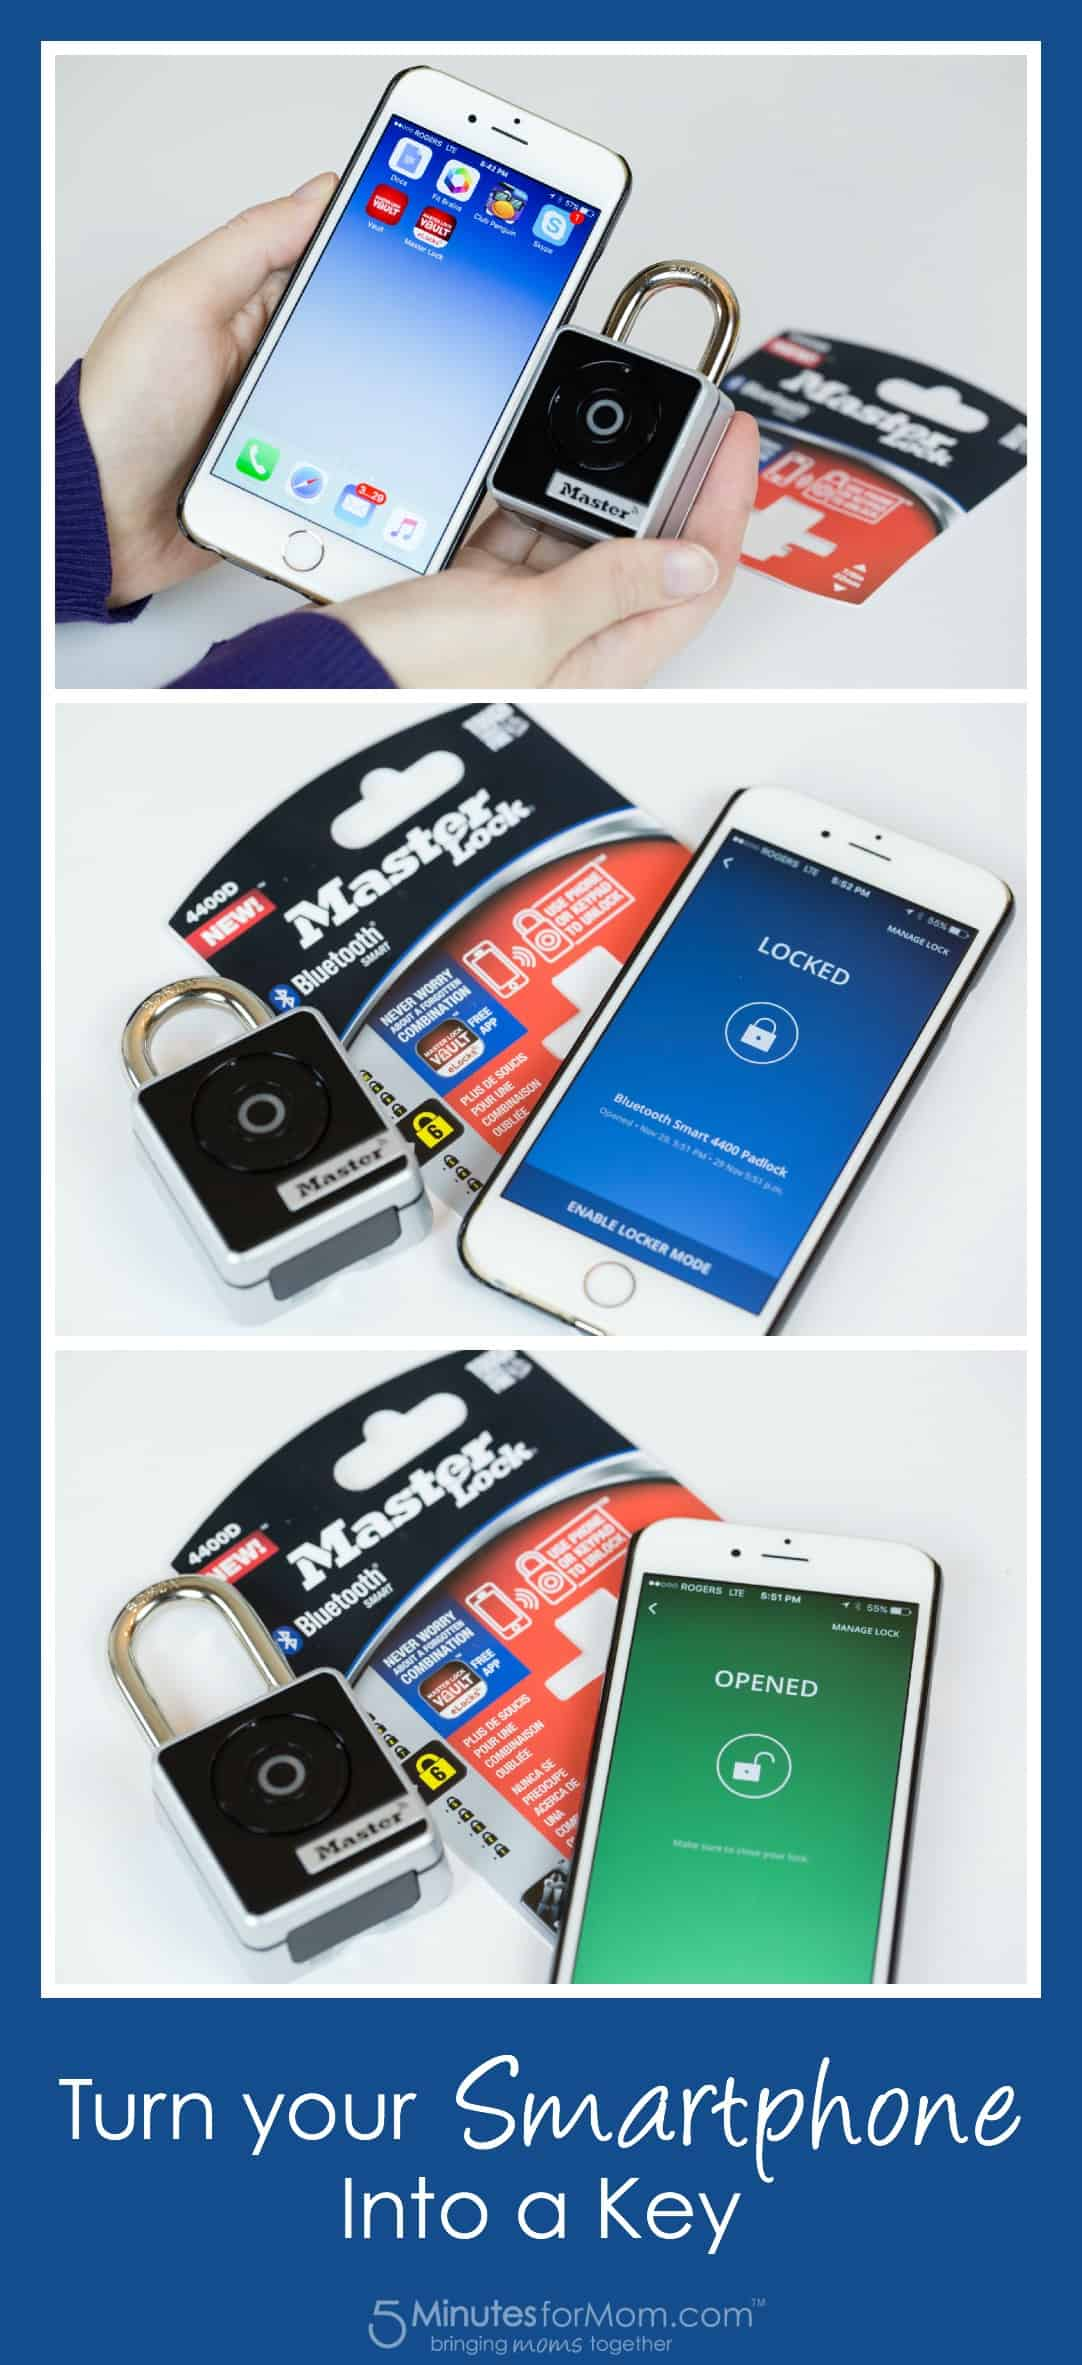 Turn your smartphone into a key